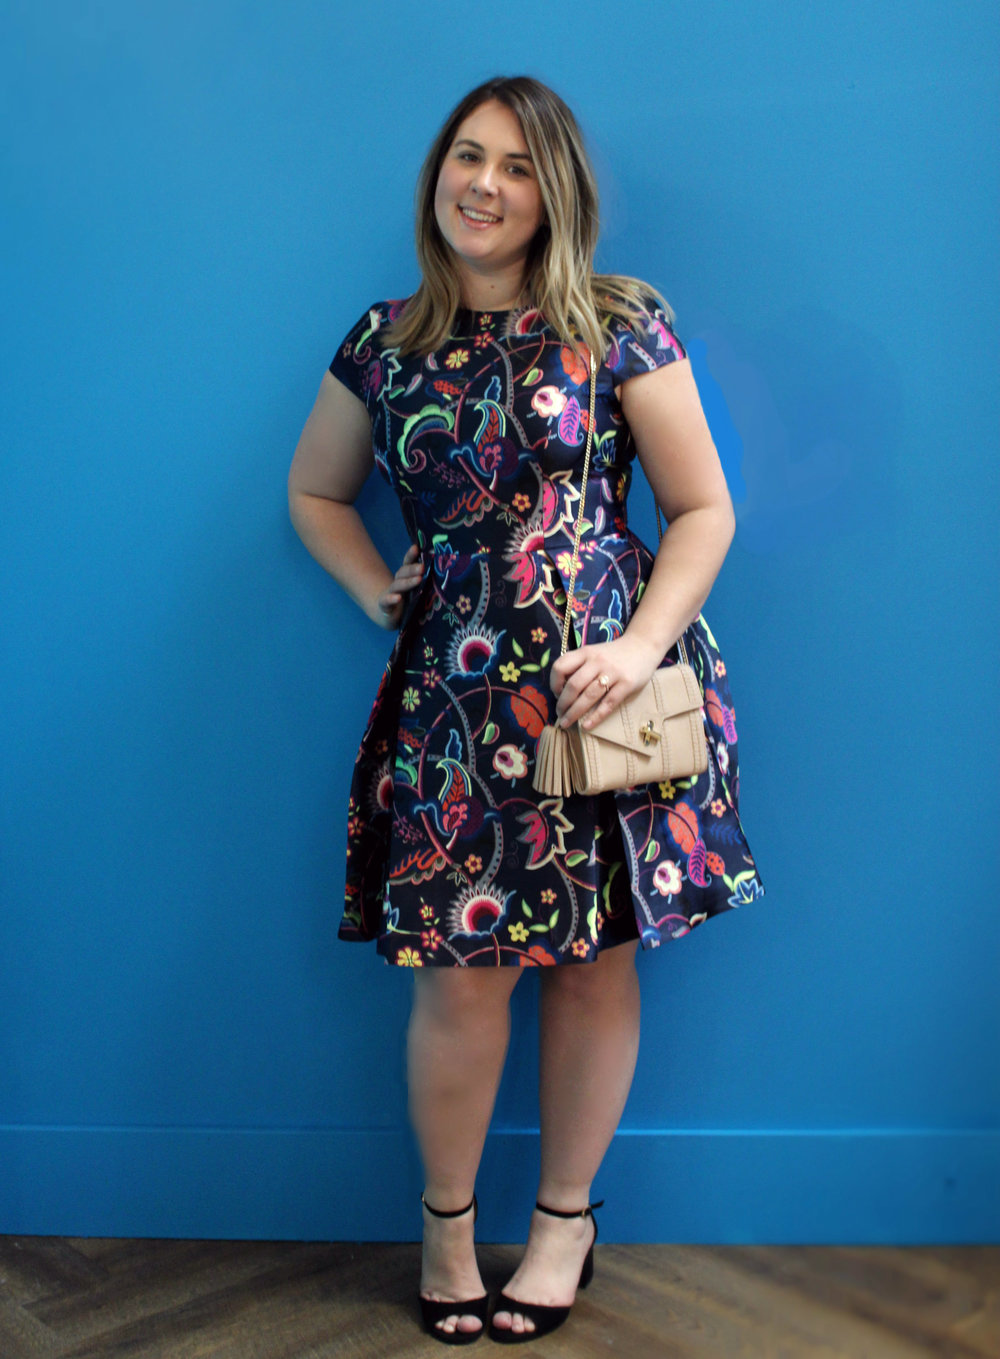 Ted Baker Paisley Skater Dress $395 Ela Leather Clutch $350 Sam Edelman Heels $175